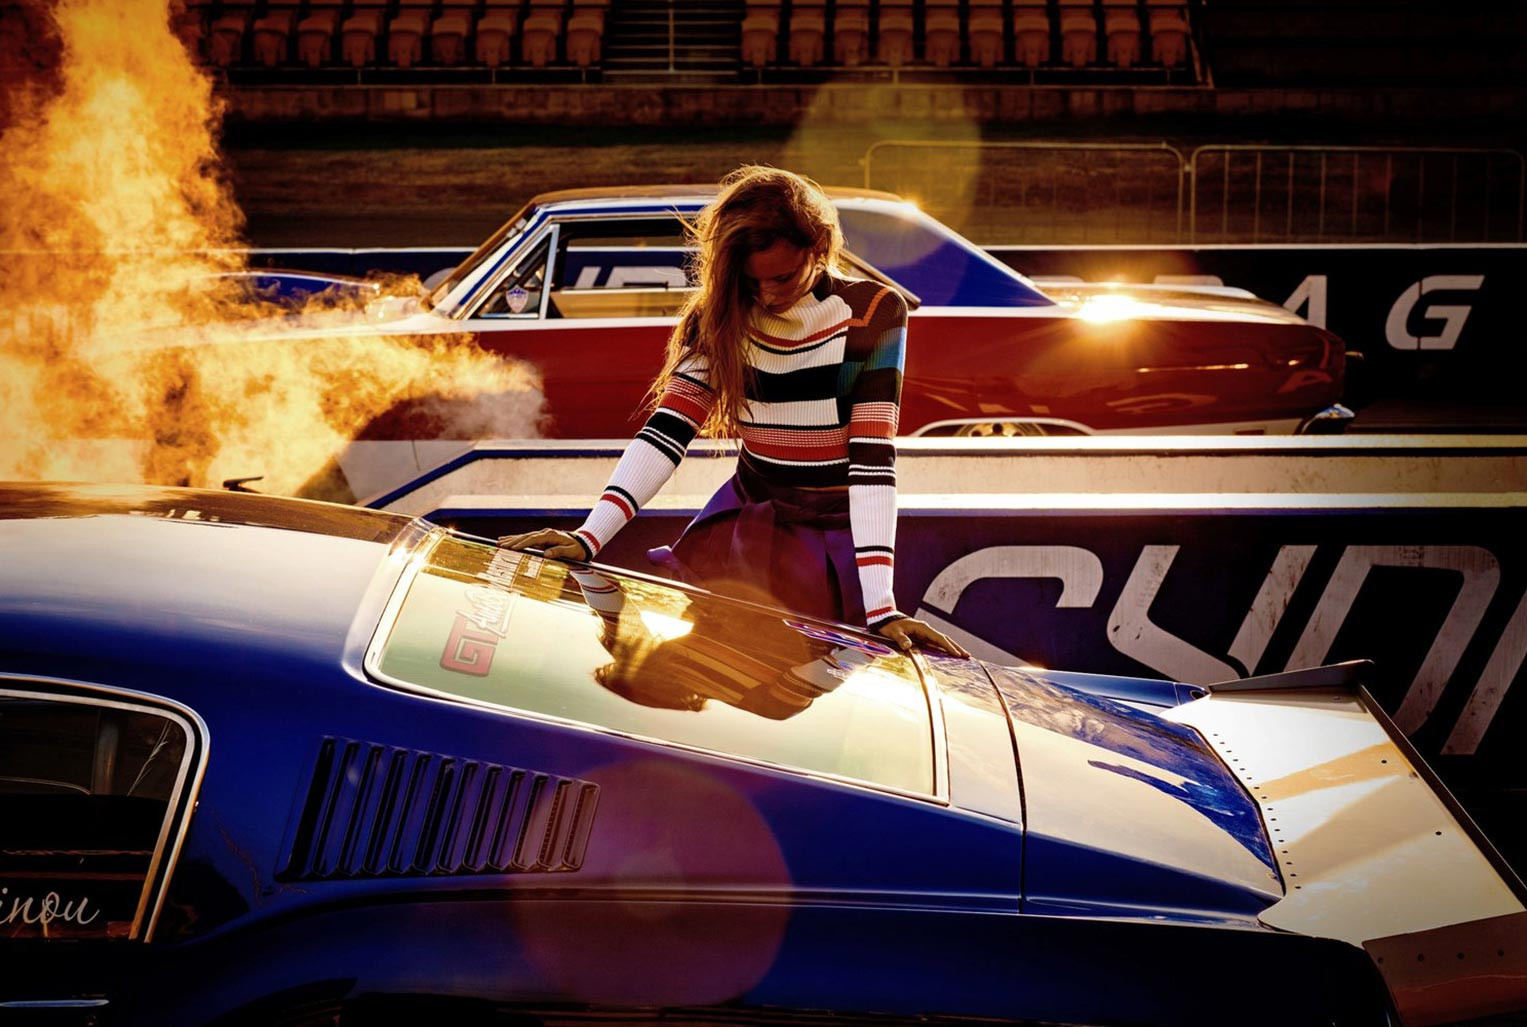 Drag Racer / Cate Underwood by David Mandelberg / Grazia Australia may 2016